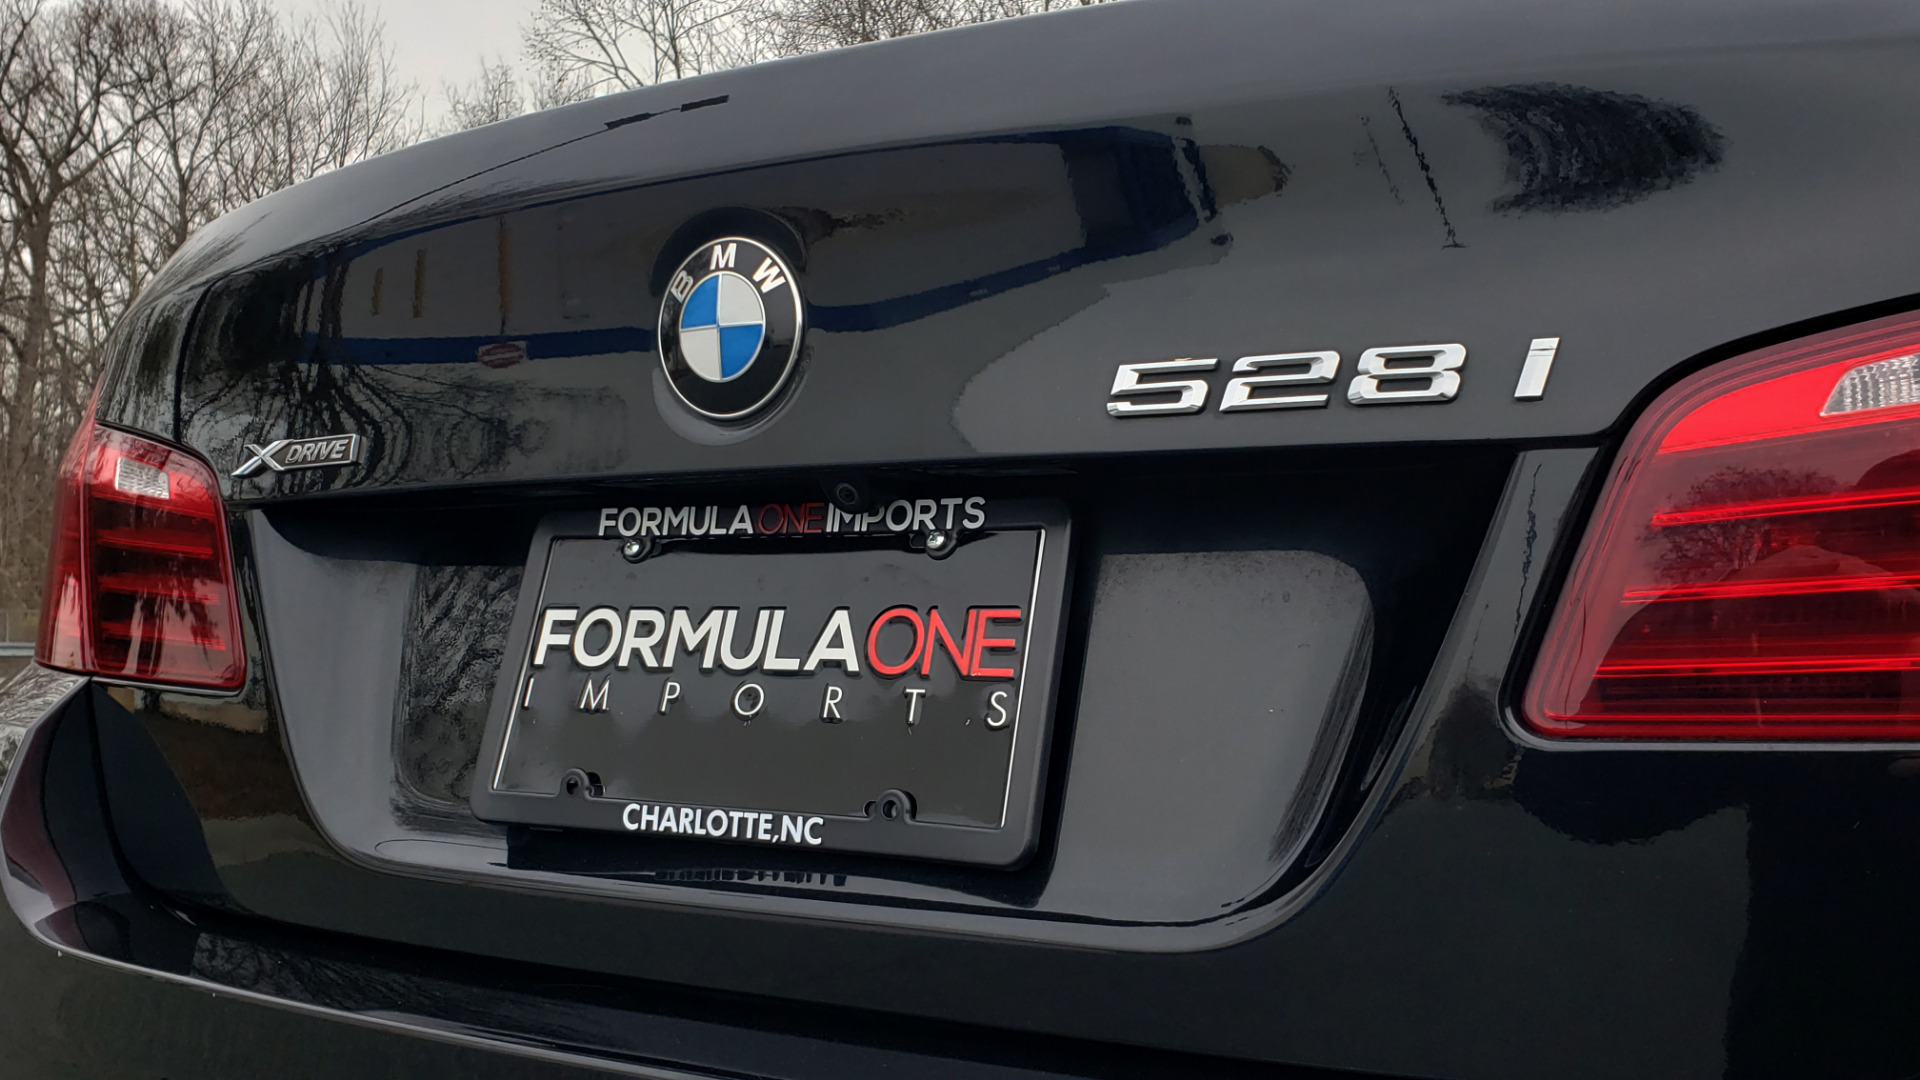 Used 2016 BMW 5 SERIES 528i XDRIVE / PREM PKG / DRVR ASST PLUS / LUXURY / COLD WTHR for sale Sold at Formula Imports in Charlotte NC 28227 34